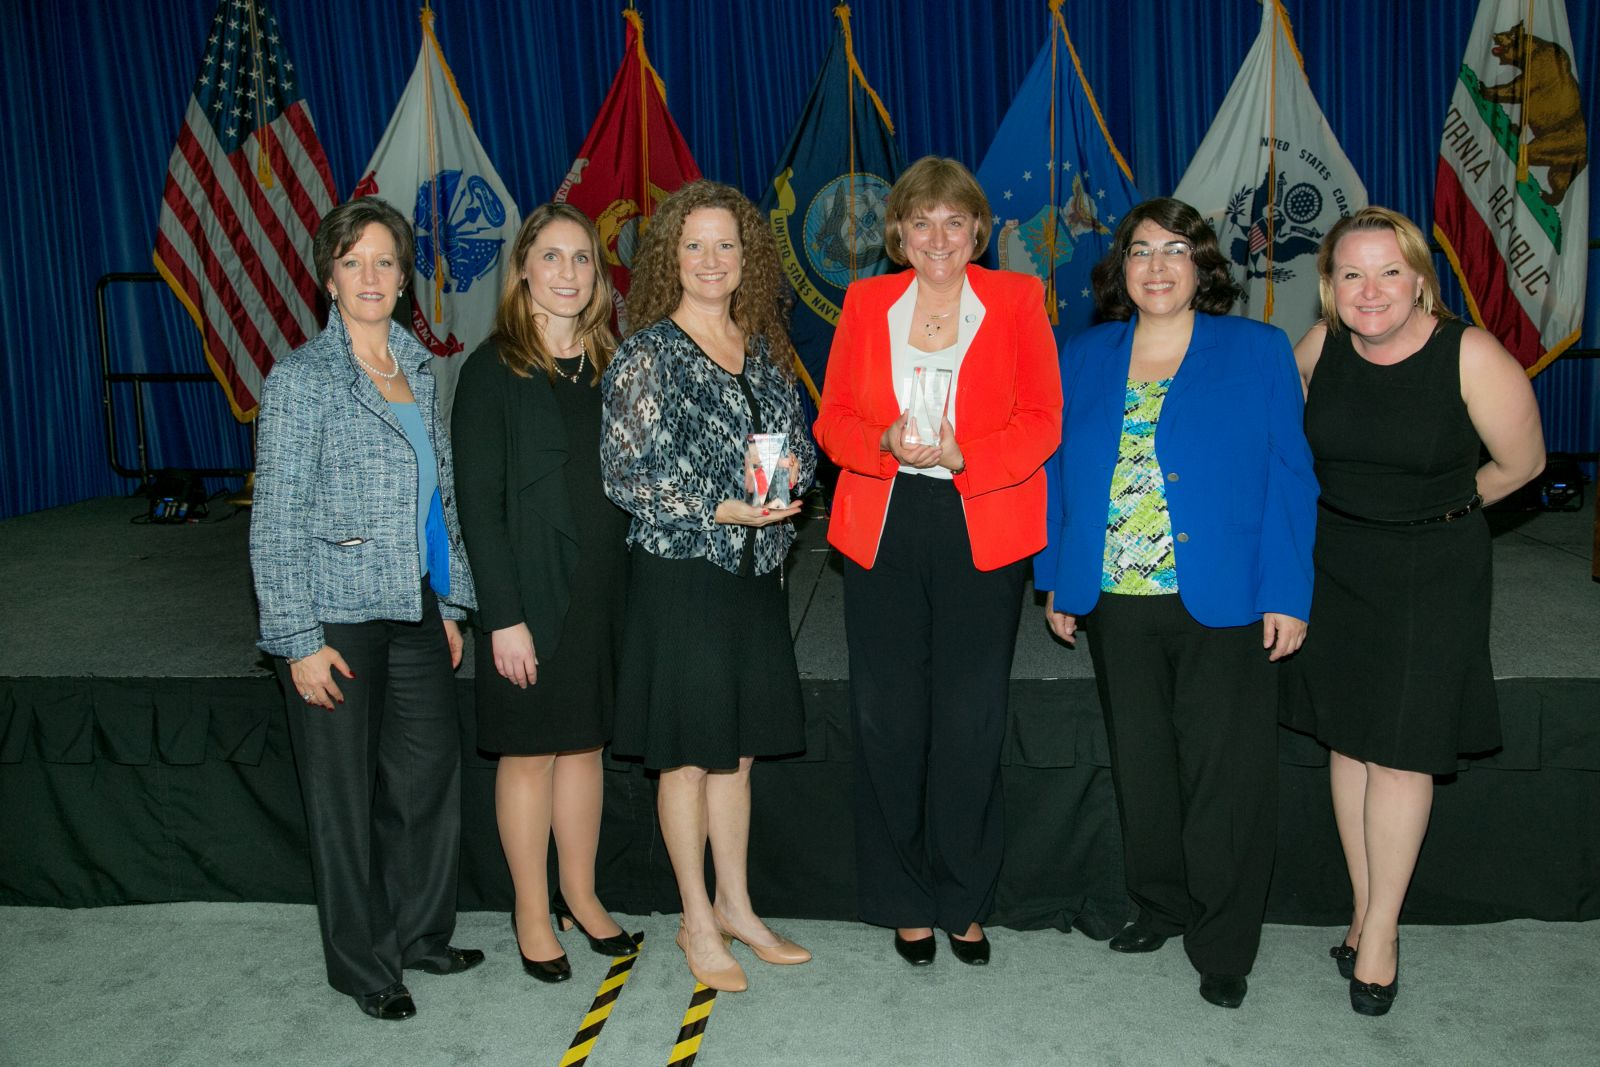 women s appreciation event 2017 women in cyber afcea international this ceremony recognized and honored afcea members both women and men receiving the women s appreciation award in recognition of their going above and